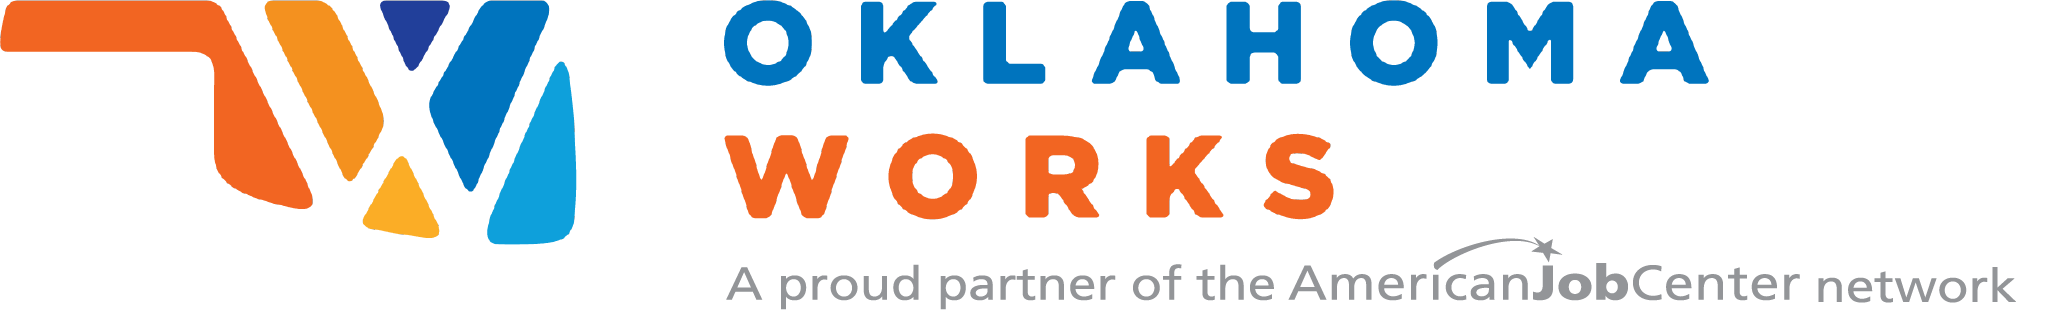 Workforce oklahoma job link